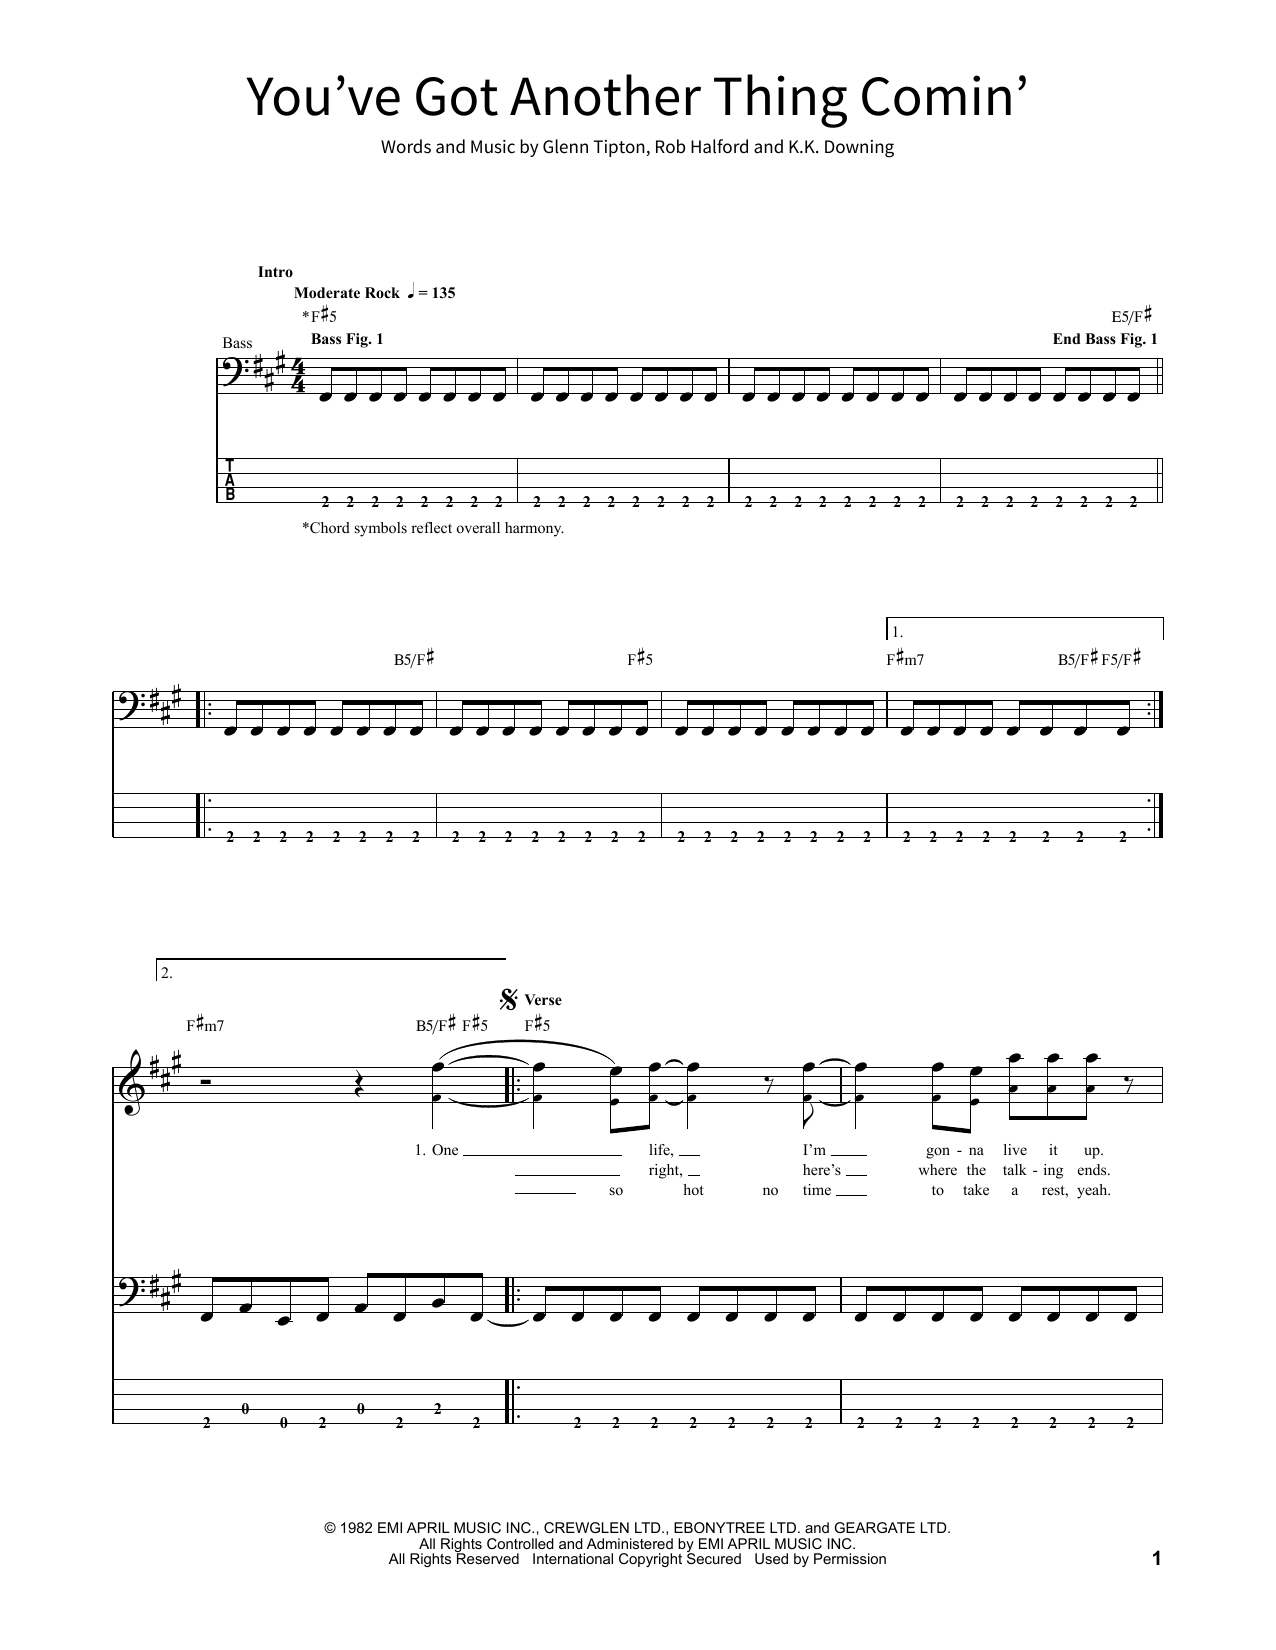 Judas Priest You've Got Another Thing Coming sheet music notes and chords. Download Printable PDF.